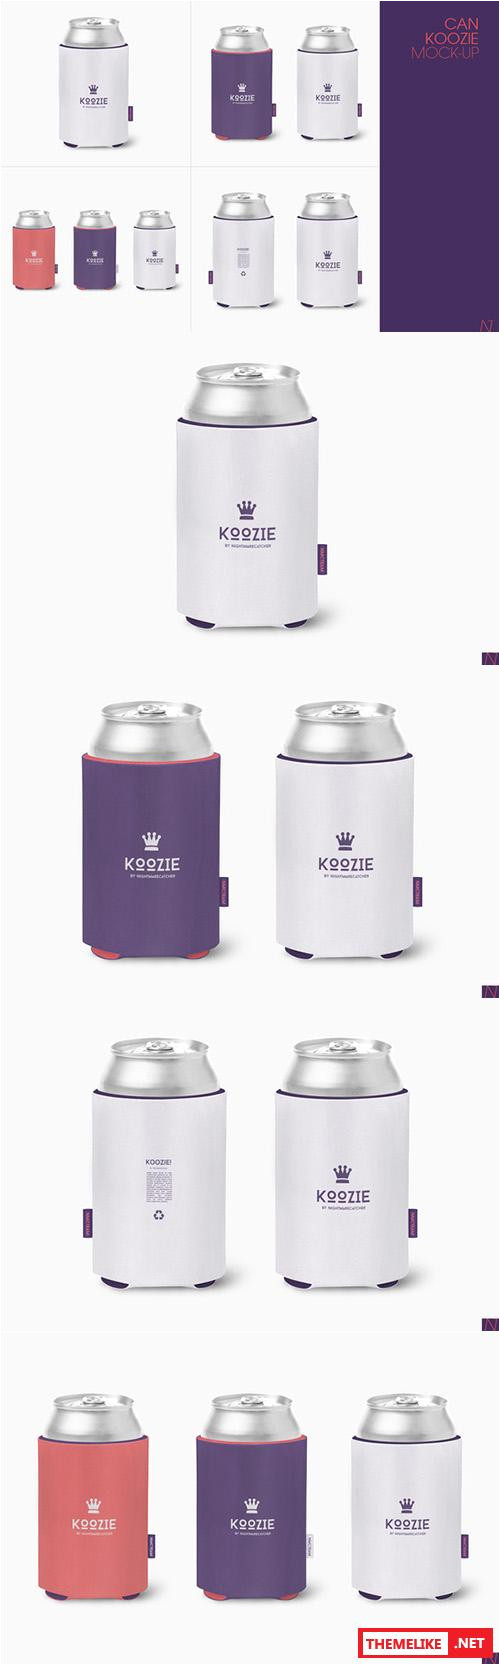 Koozie Design Template Creativemarket Can Koozie Mock Up 266053 All Design